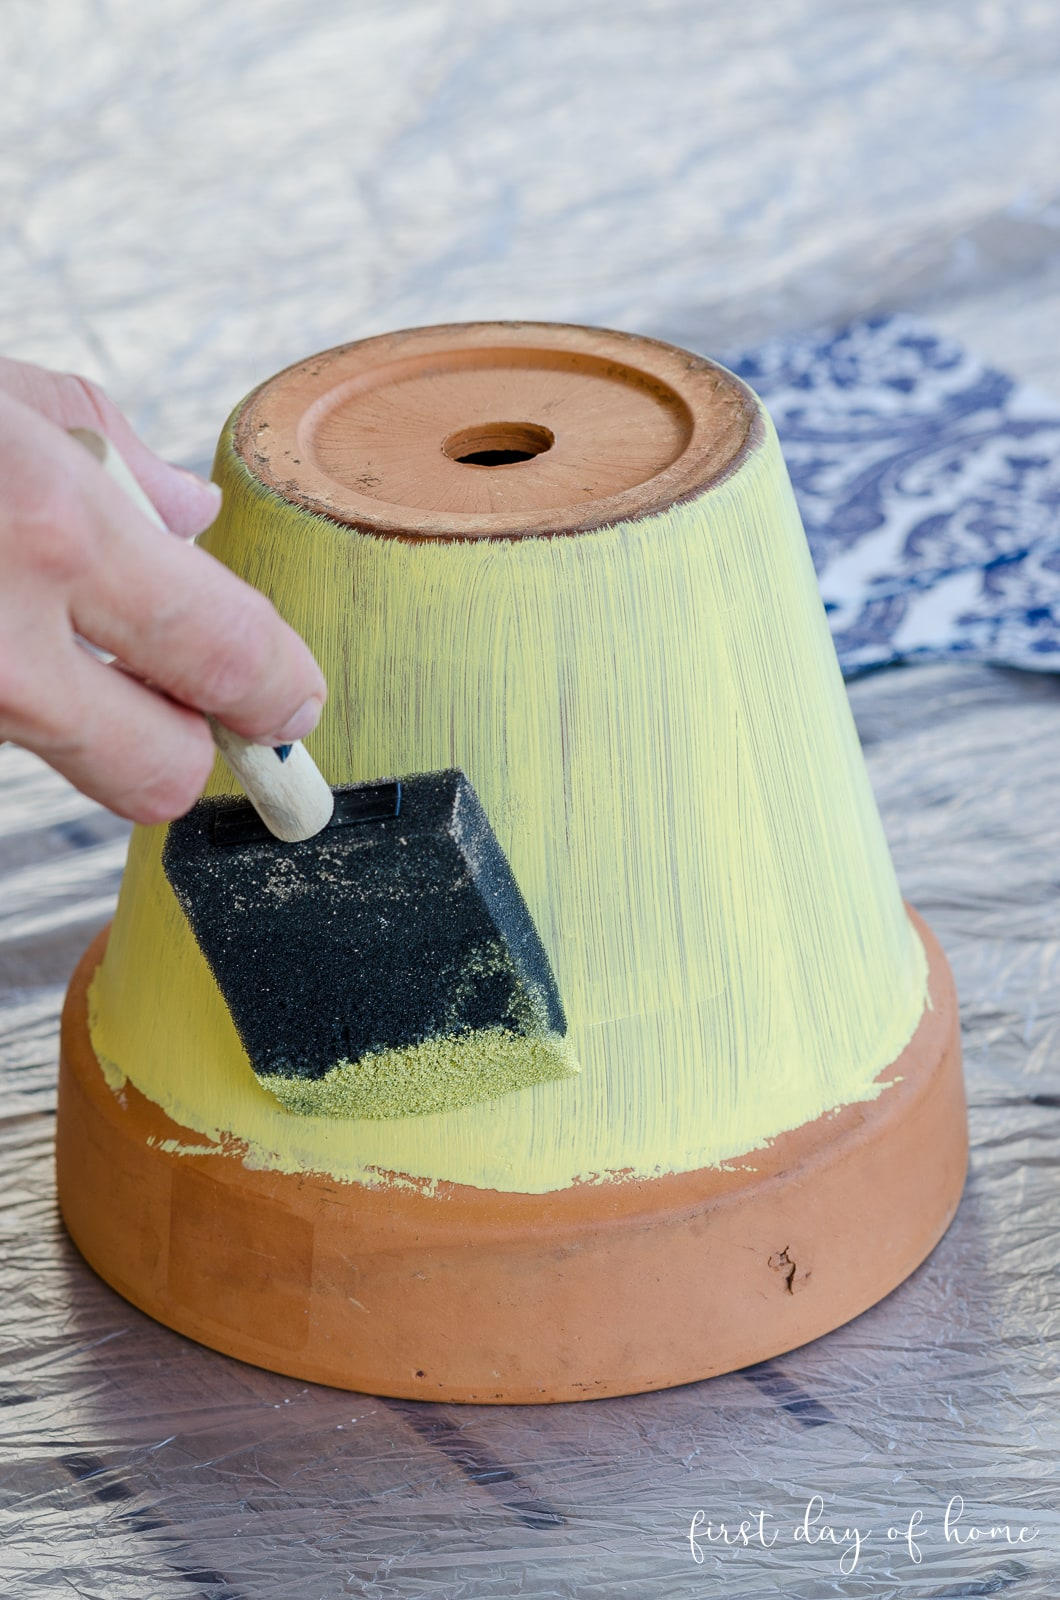 Painting a terracotta pot yellow